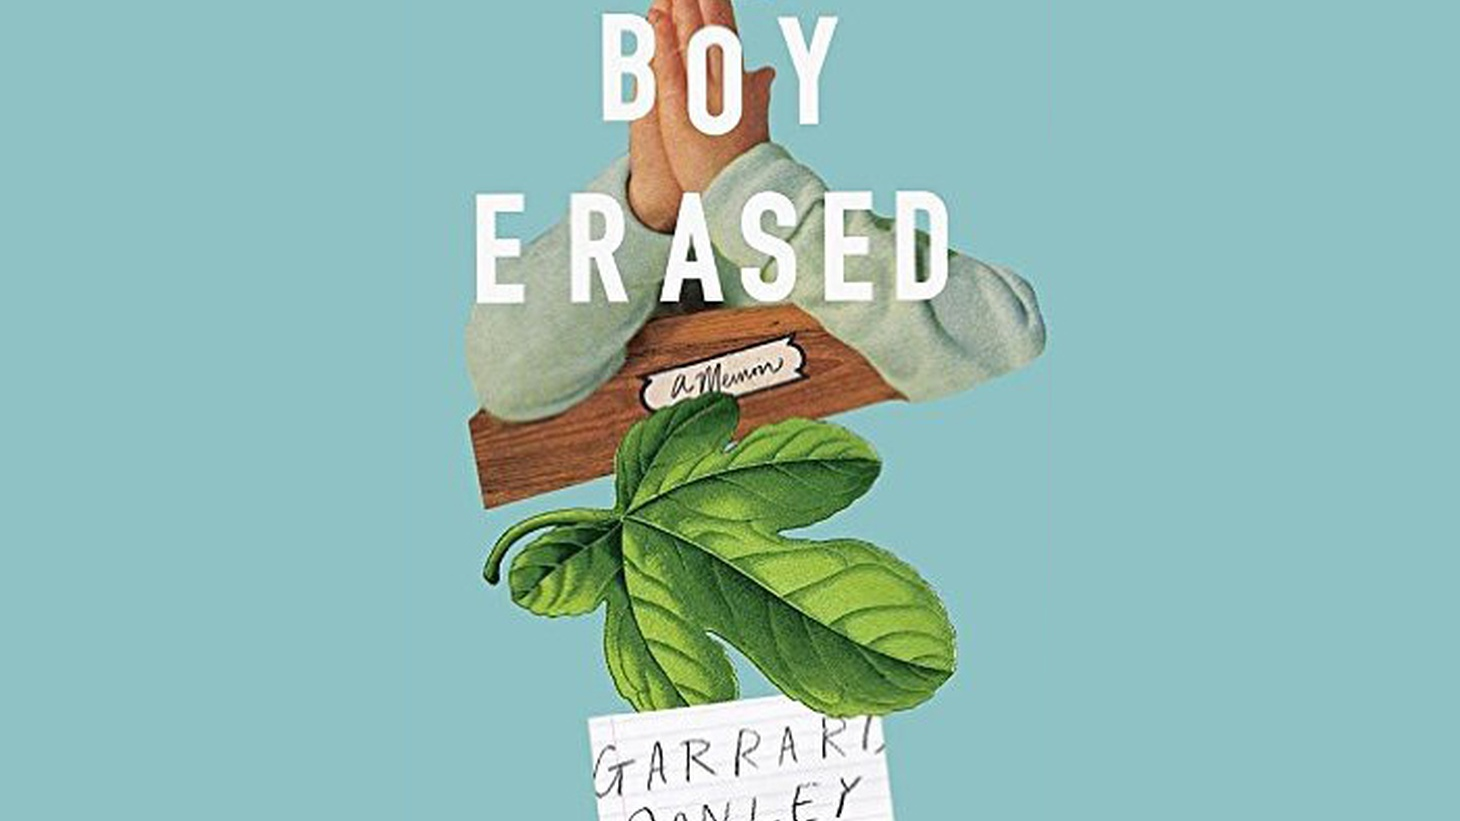 Garrard Conley grew up in rural Arkansas as a Mission Baptist. His mother and father were devout to say the least. An only child who worked at his dad's car lot, Conley was encouraged to minister to the customers. Every soul counted, especially the lost ones. But Conley, himself, was feeling increasingly lost.